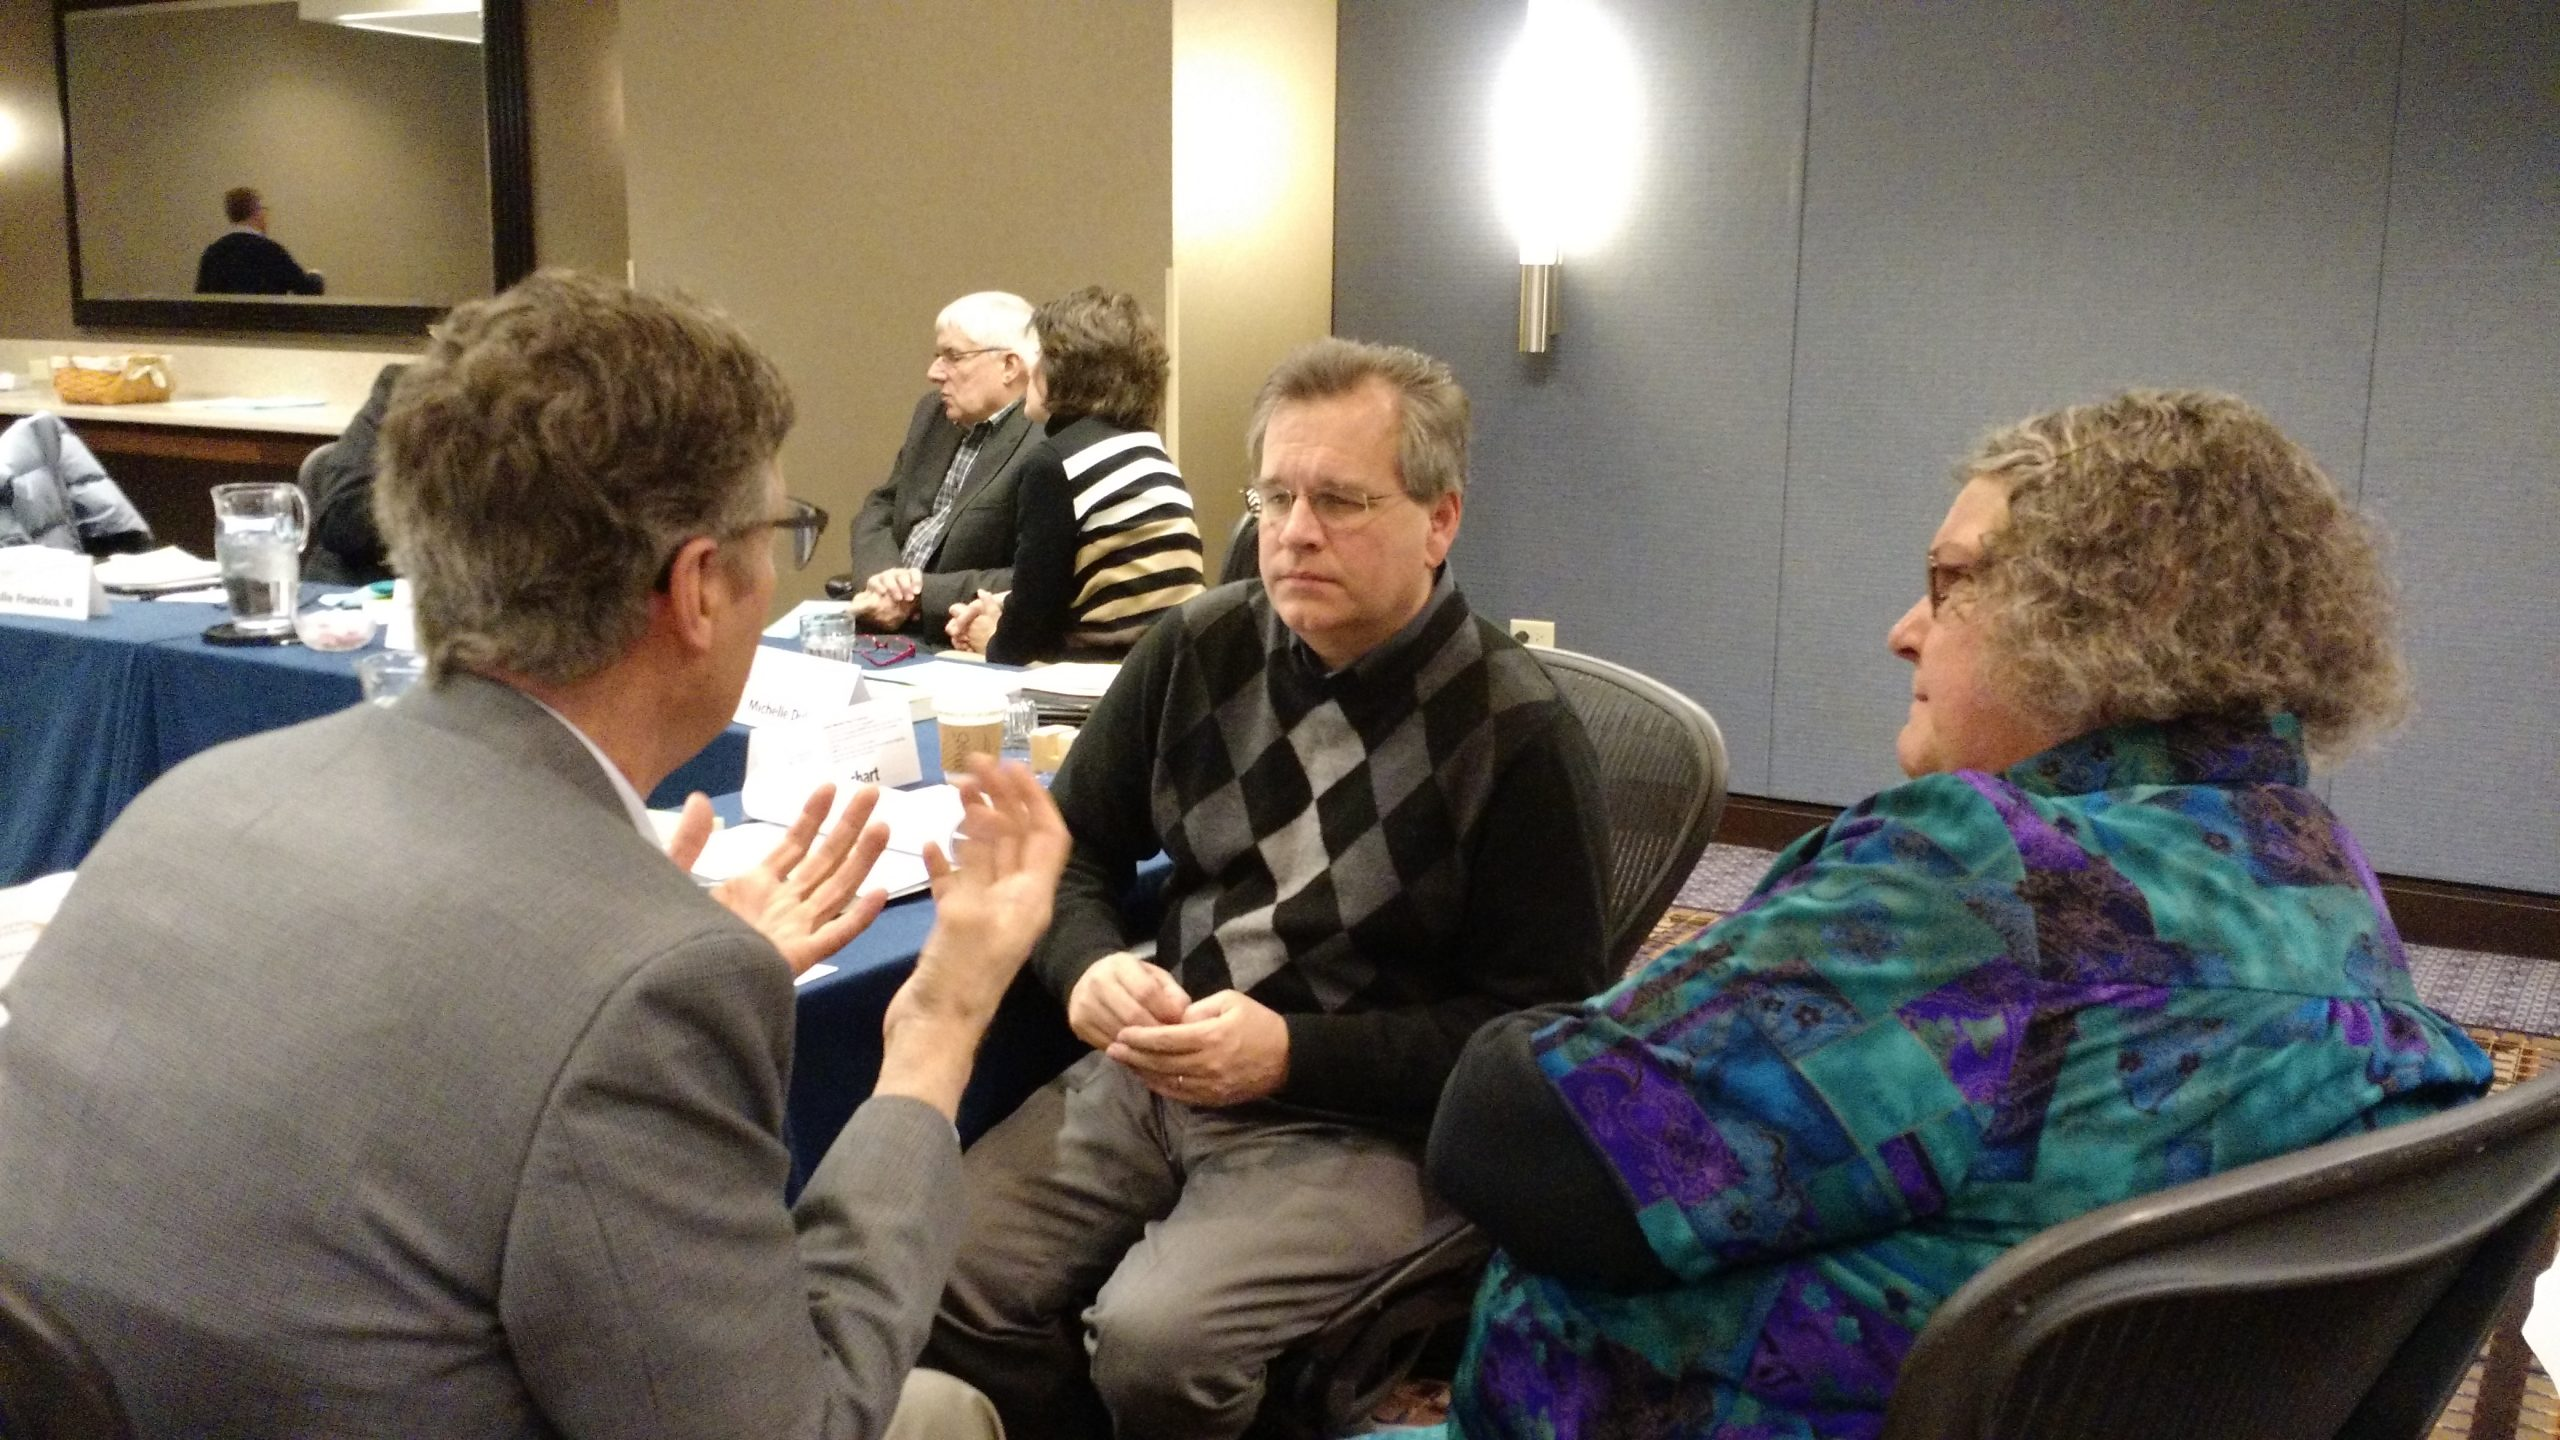 Mennonite Church USA Executive Board members at their February 2016 meeting near Chicago: (left to right) Ervin Stutzman, executive director; David Boshart, moderator-elect; Patty Shelly, moderator. (Photo by Janie Beck Kreider)